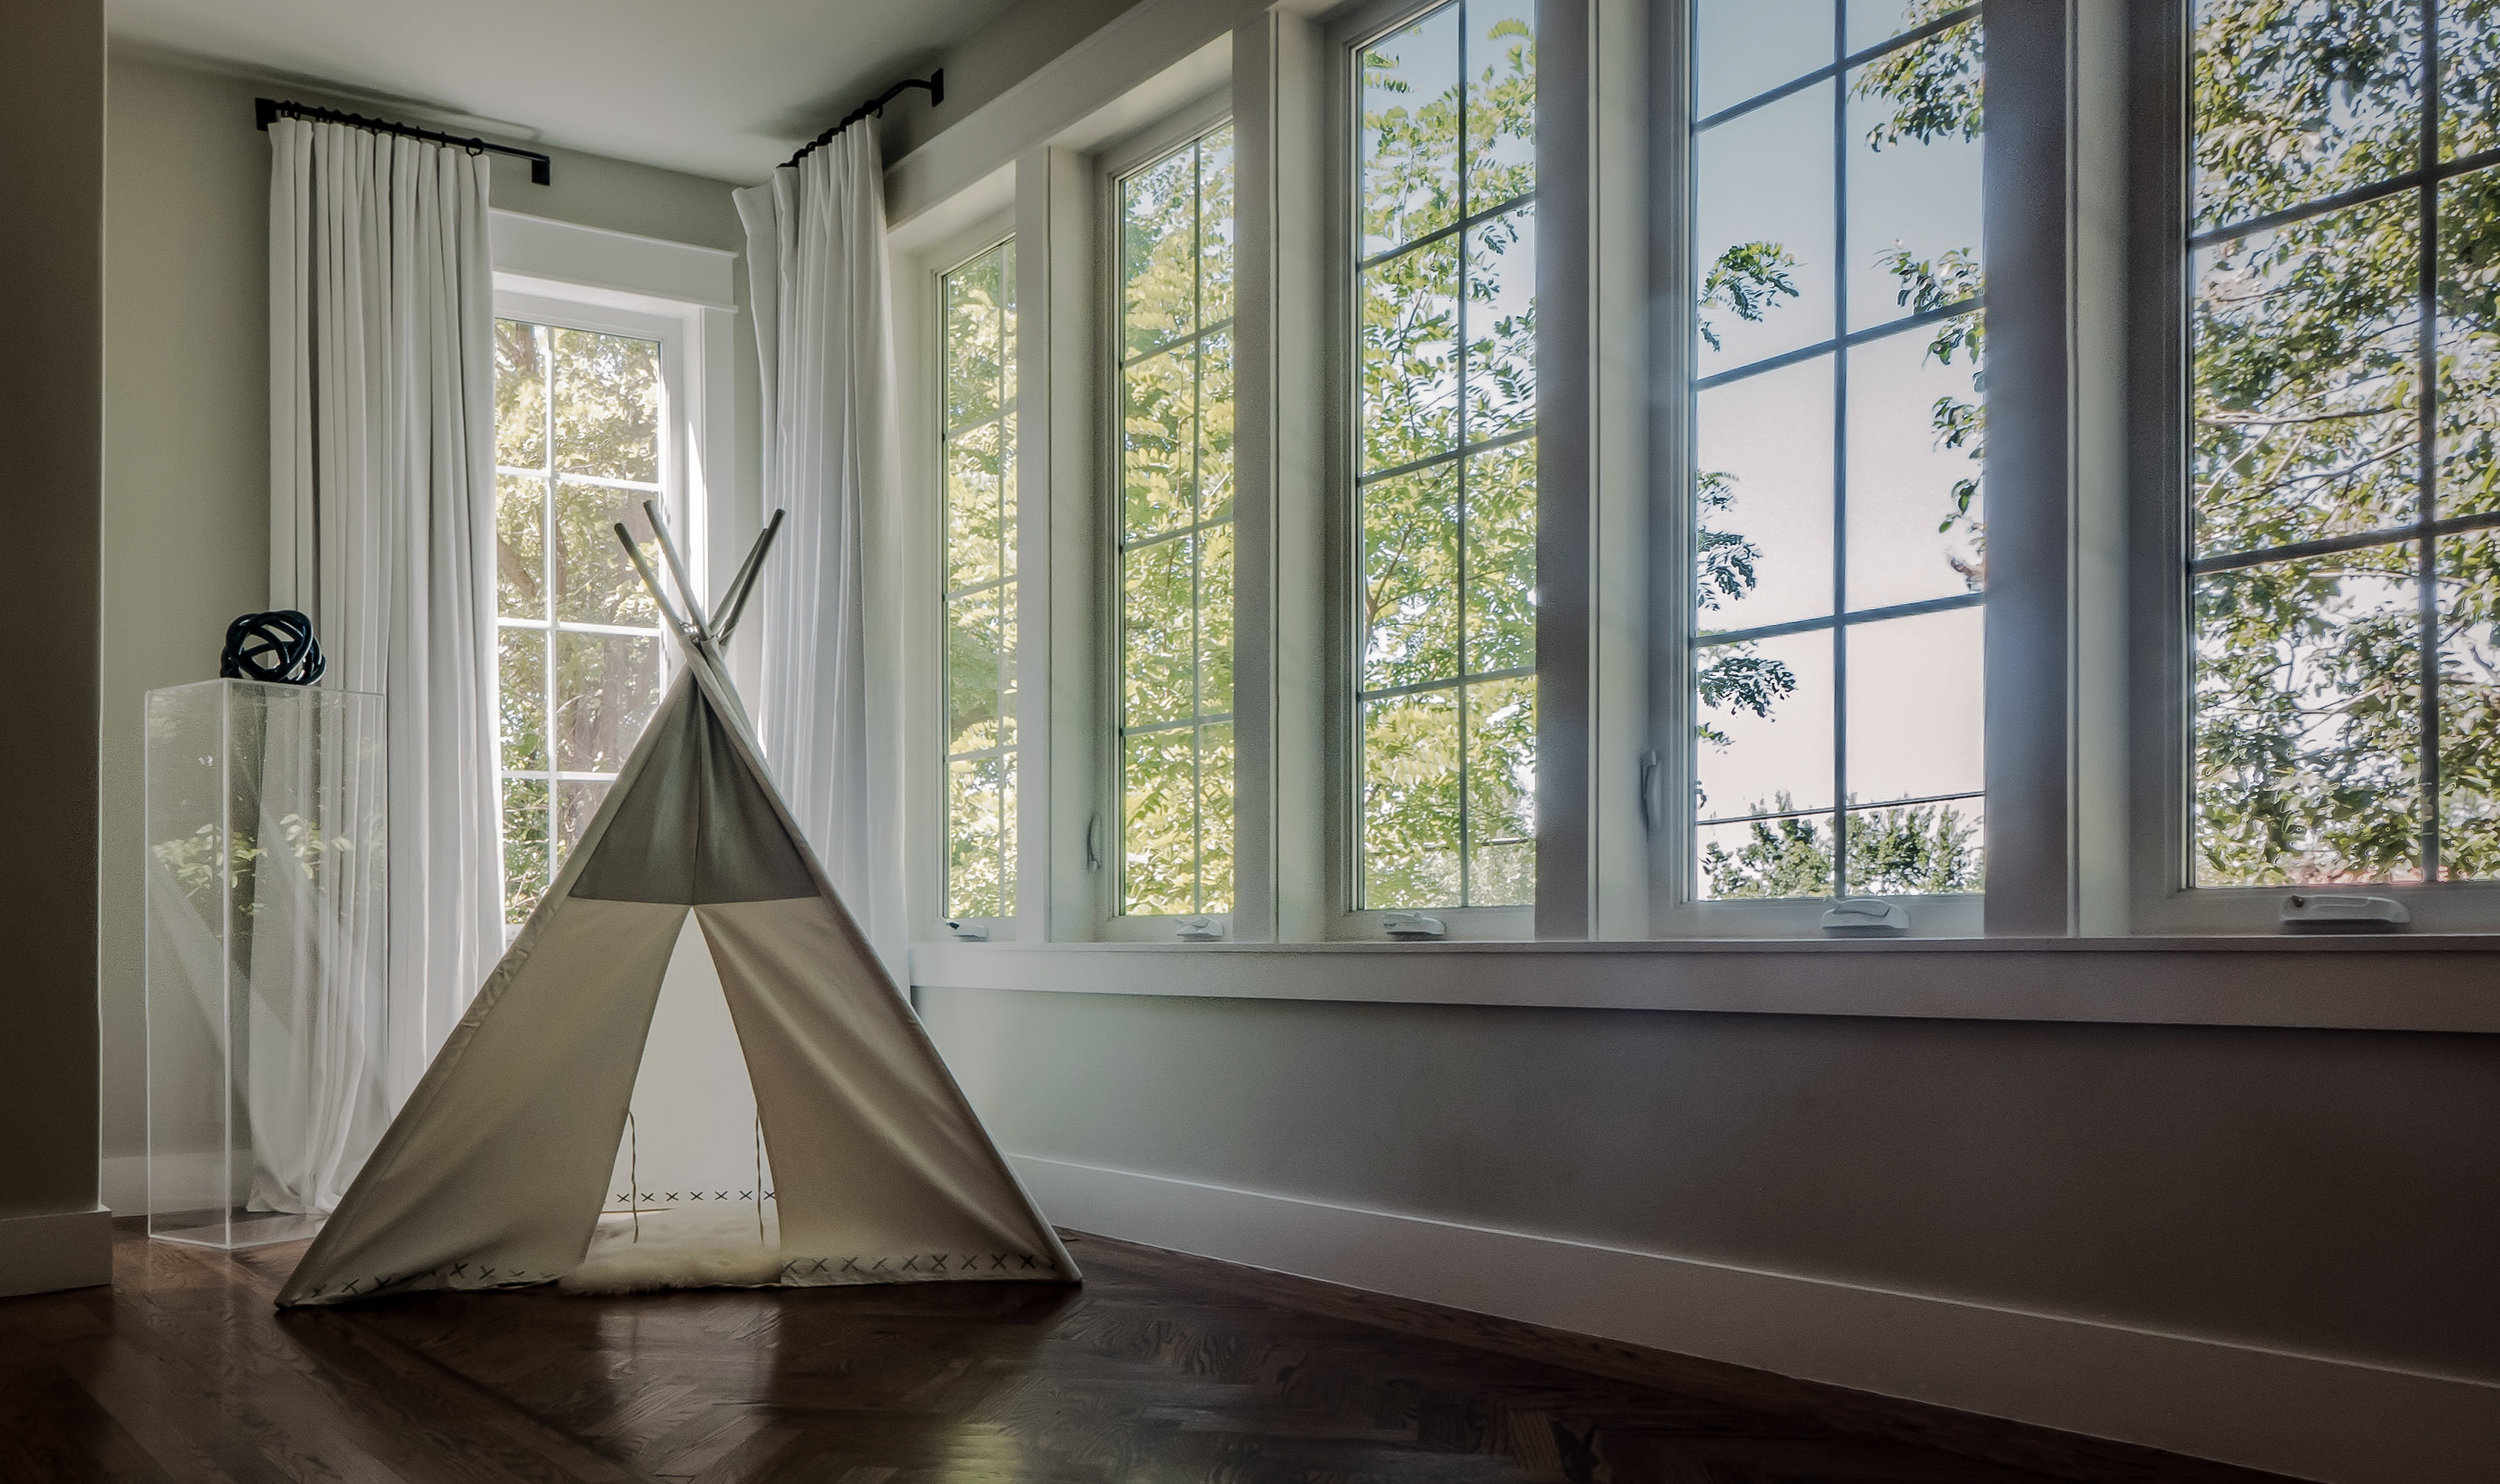 A small tipi - looks great in the living room!